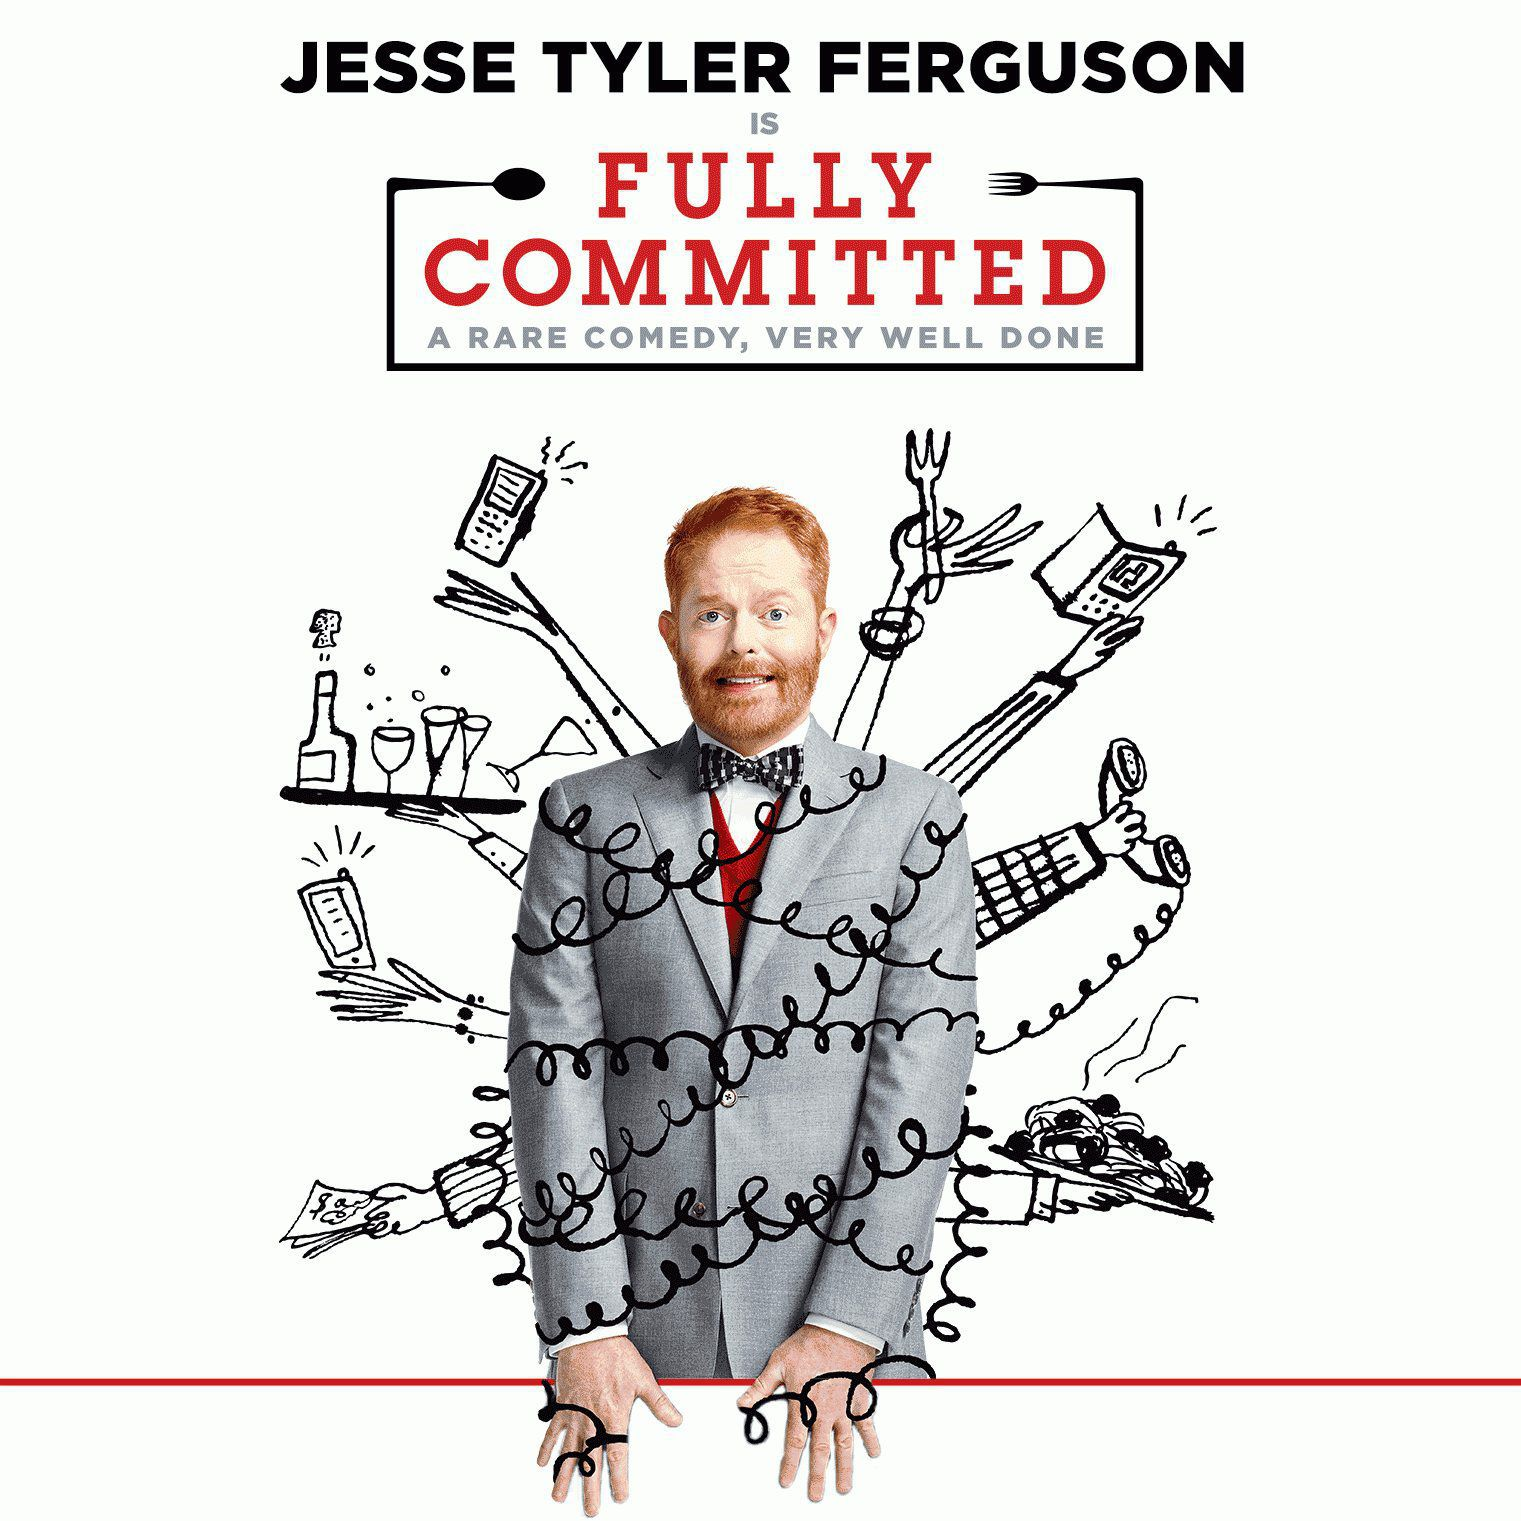 Jesse Tyler Ferguson in Fully Committed